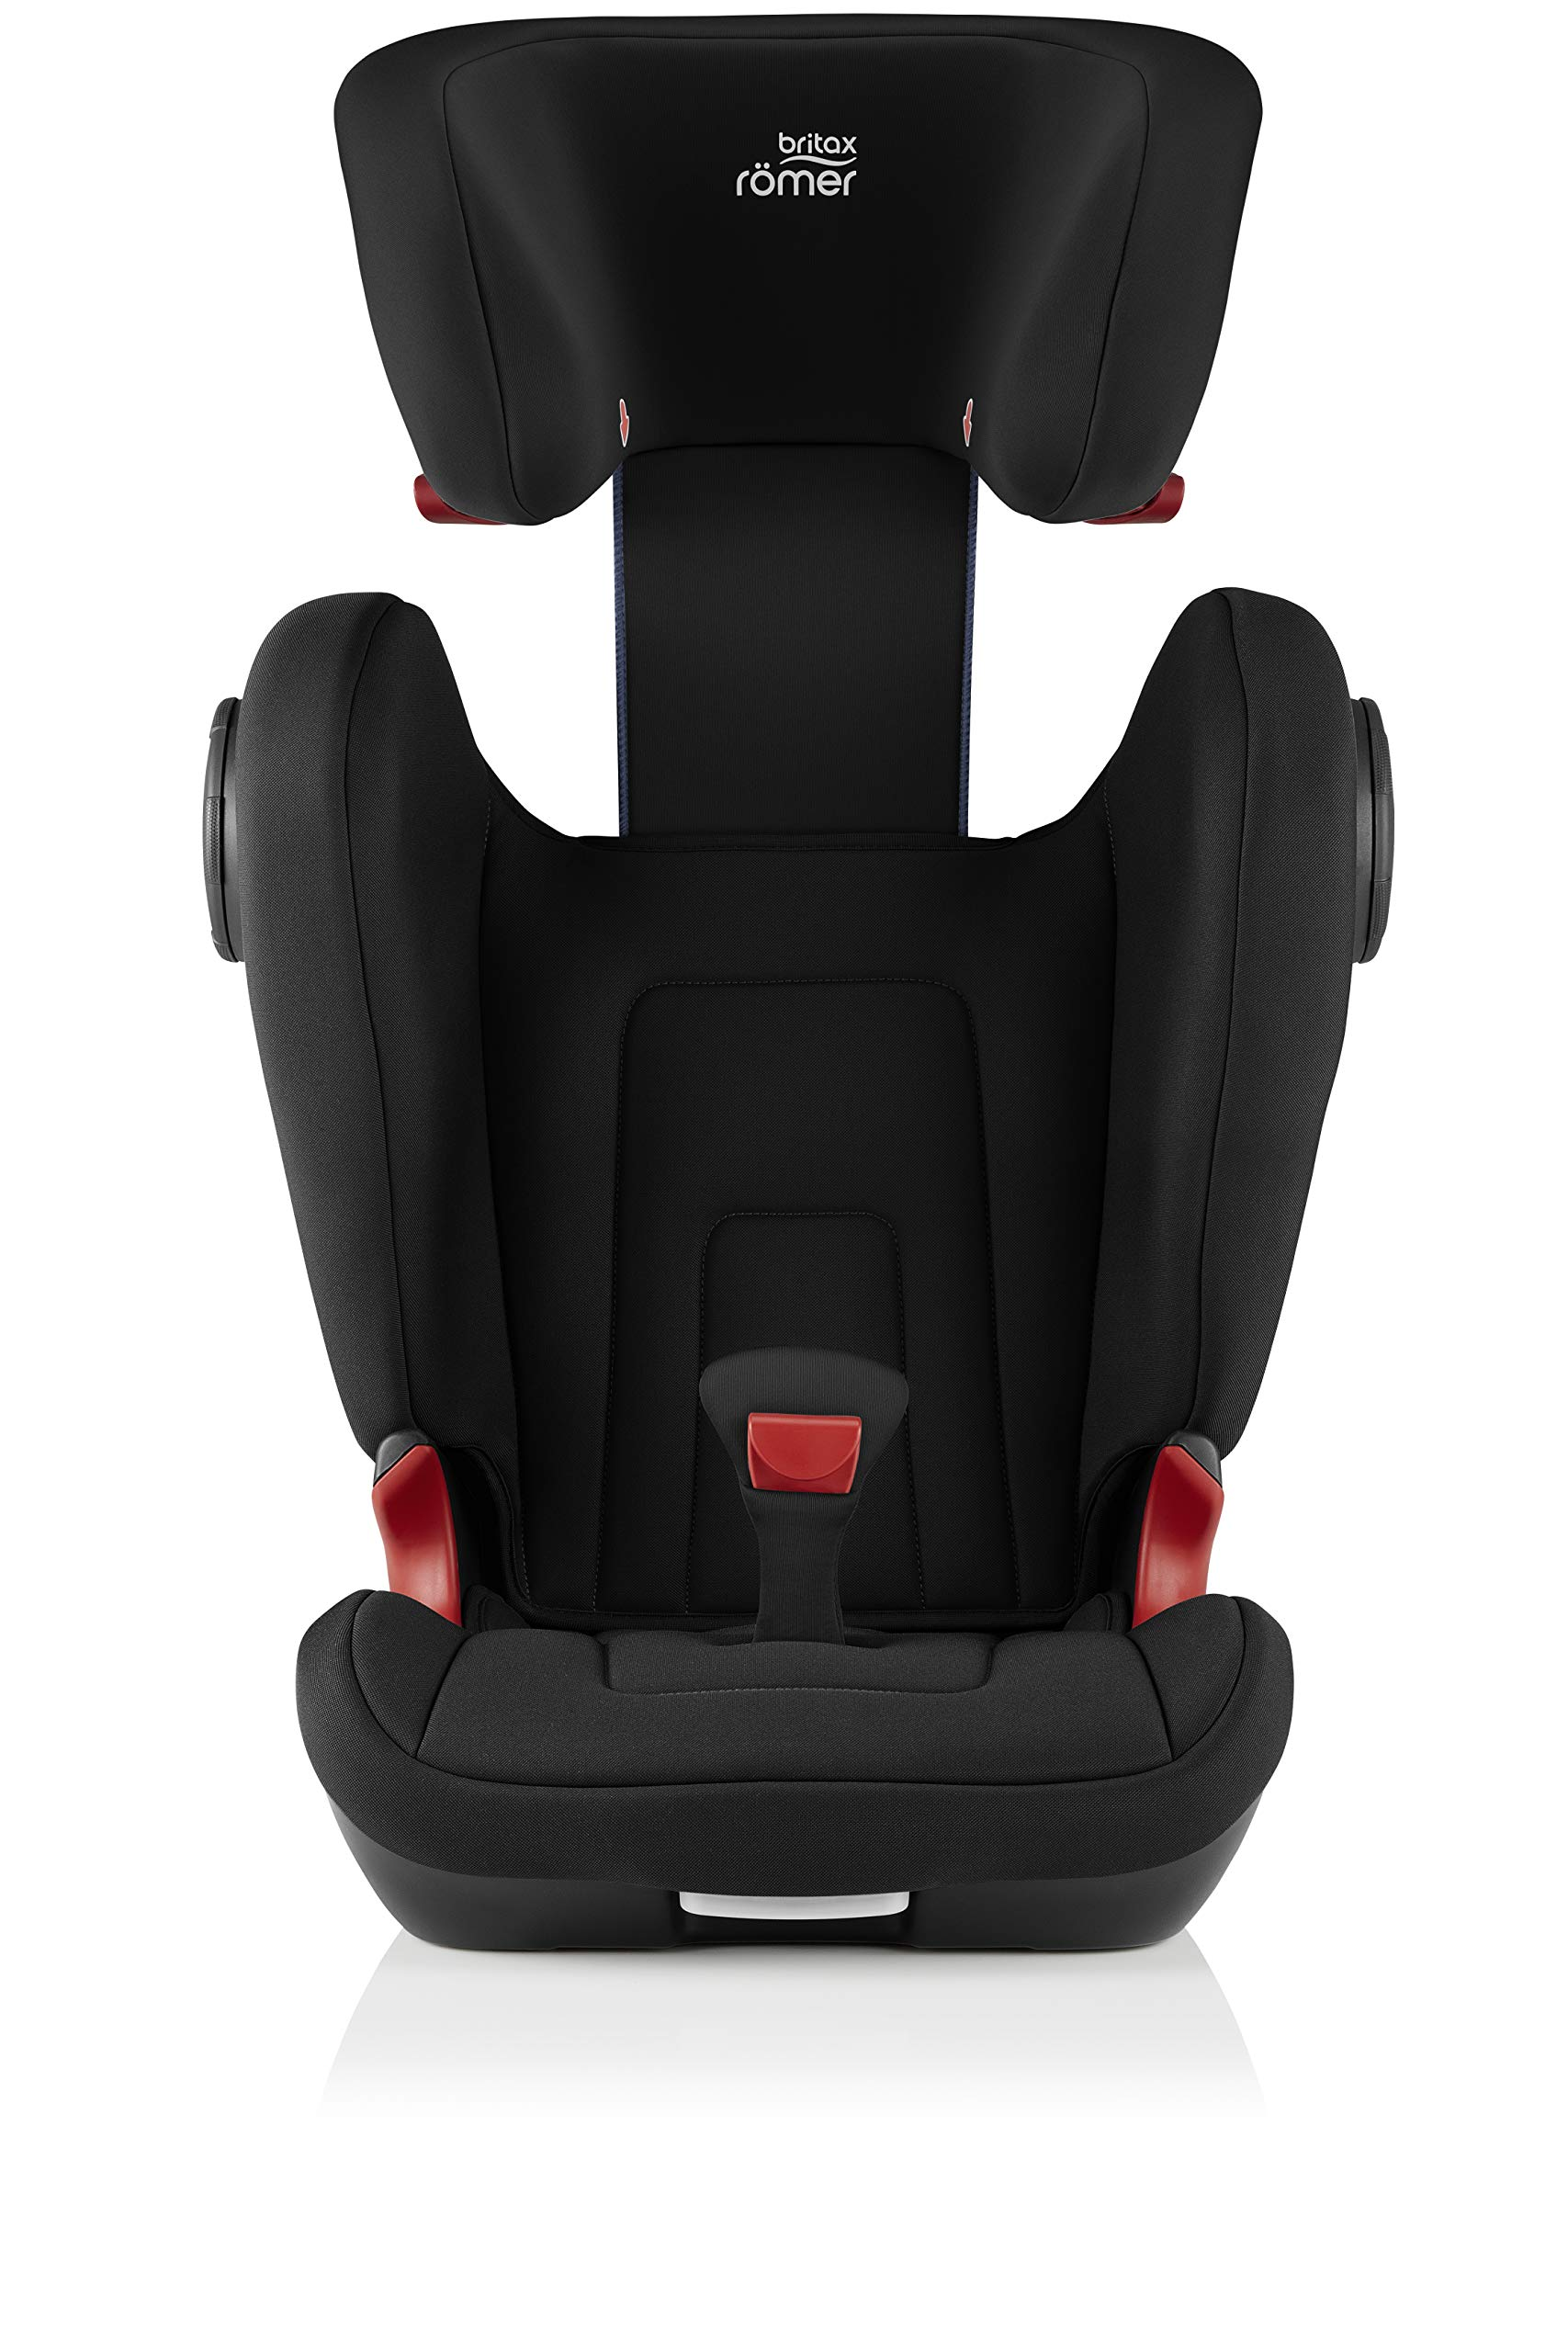 Britax Römer KIDFIX² S Group 2-3 (15-36kg) Car Seat - Cosmos Black  Advanced side impact protection - sict offers superior protection to your child in the event of a side collision. reducing impact forces by minimising the distance between the car and the car seat. Secure guard - helps to protect your child's delicate abdominal area by adding an extra - a 4th - contact point to the 3-point seat belt. High back booster - protects your child in 3 ways: provides head to hip protection; belt guides provide correct positioning of the seat belt and the padded headrest provides safety and comfort. 7